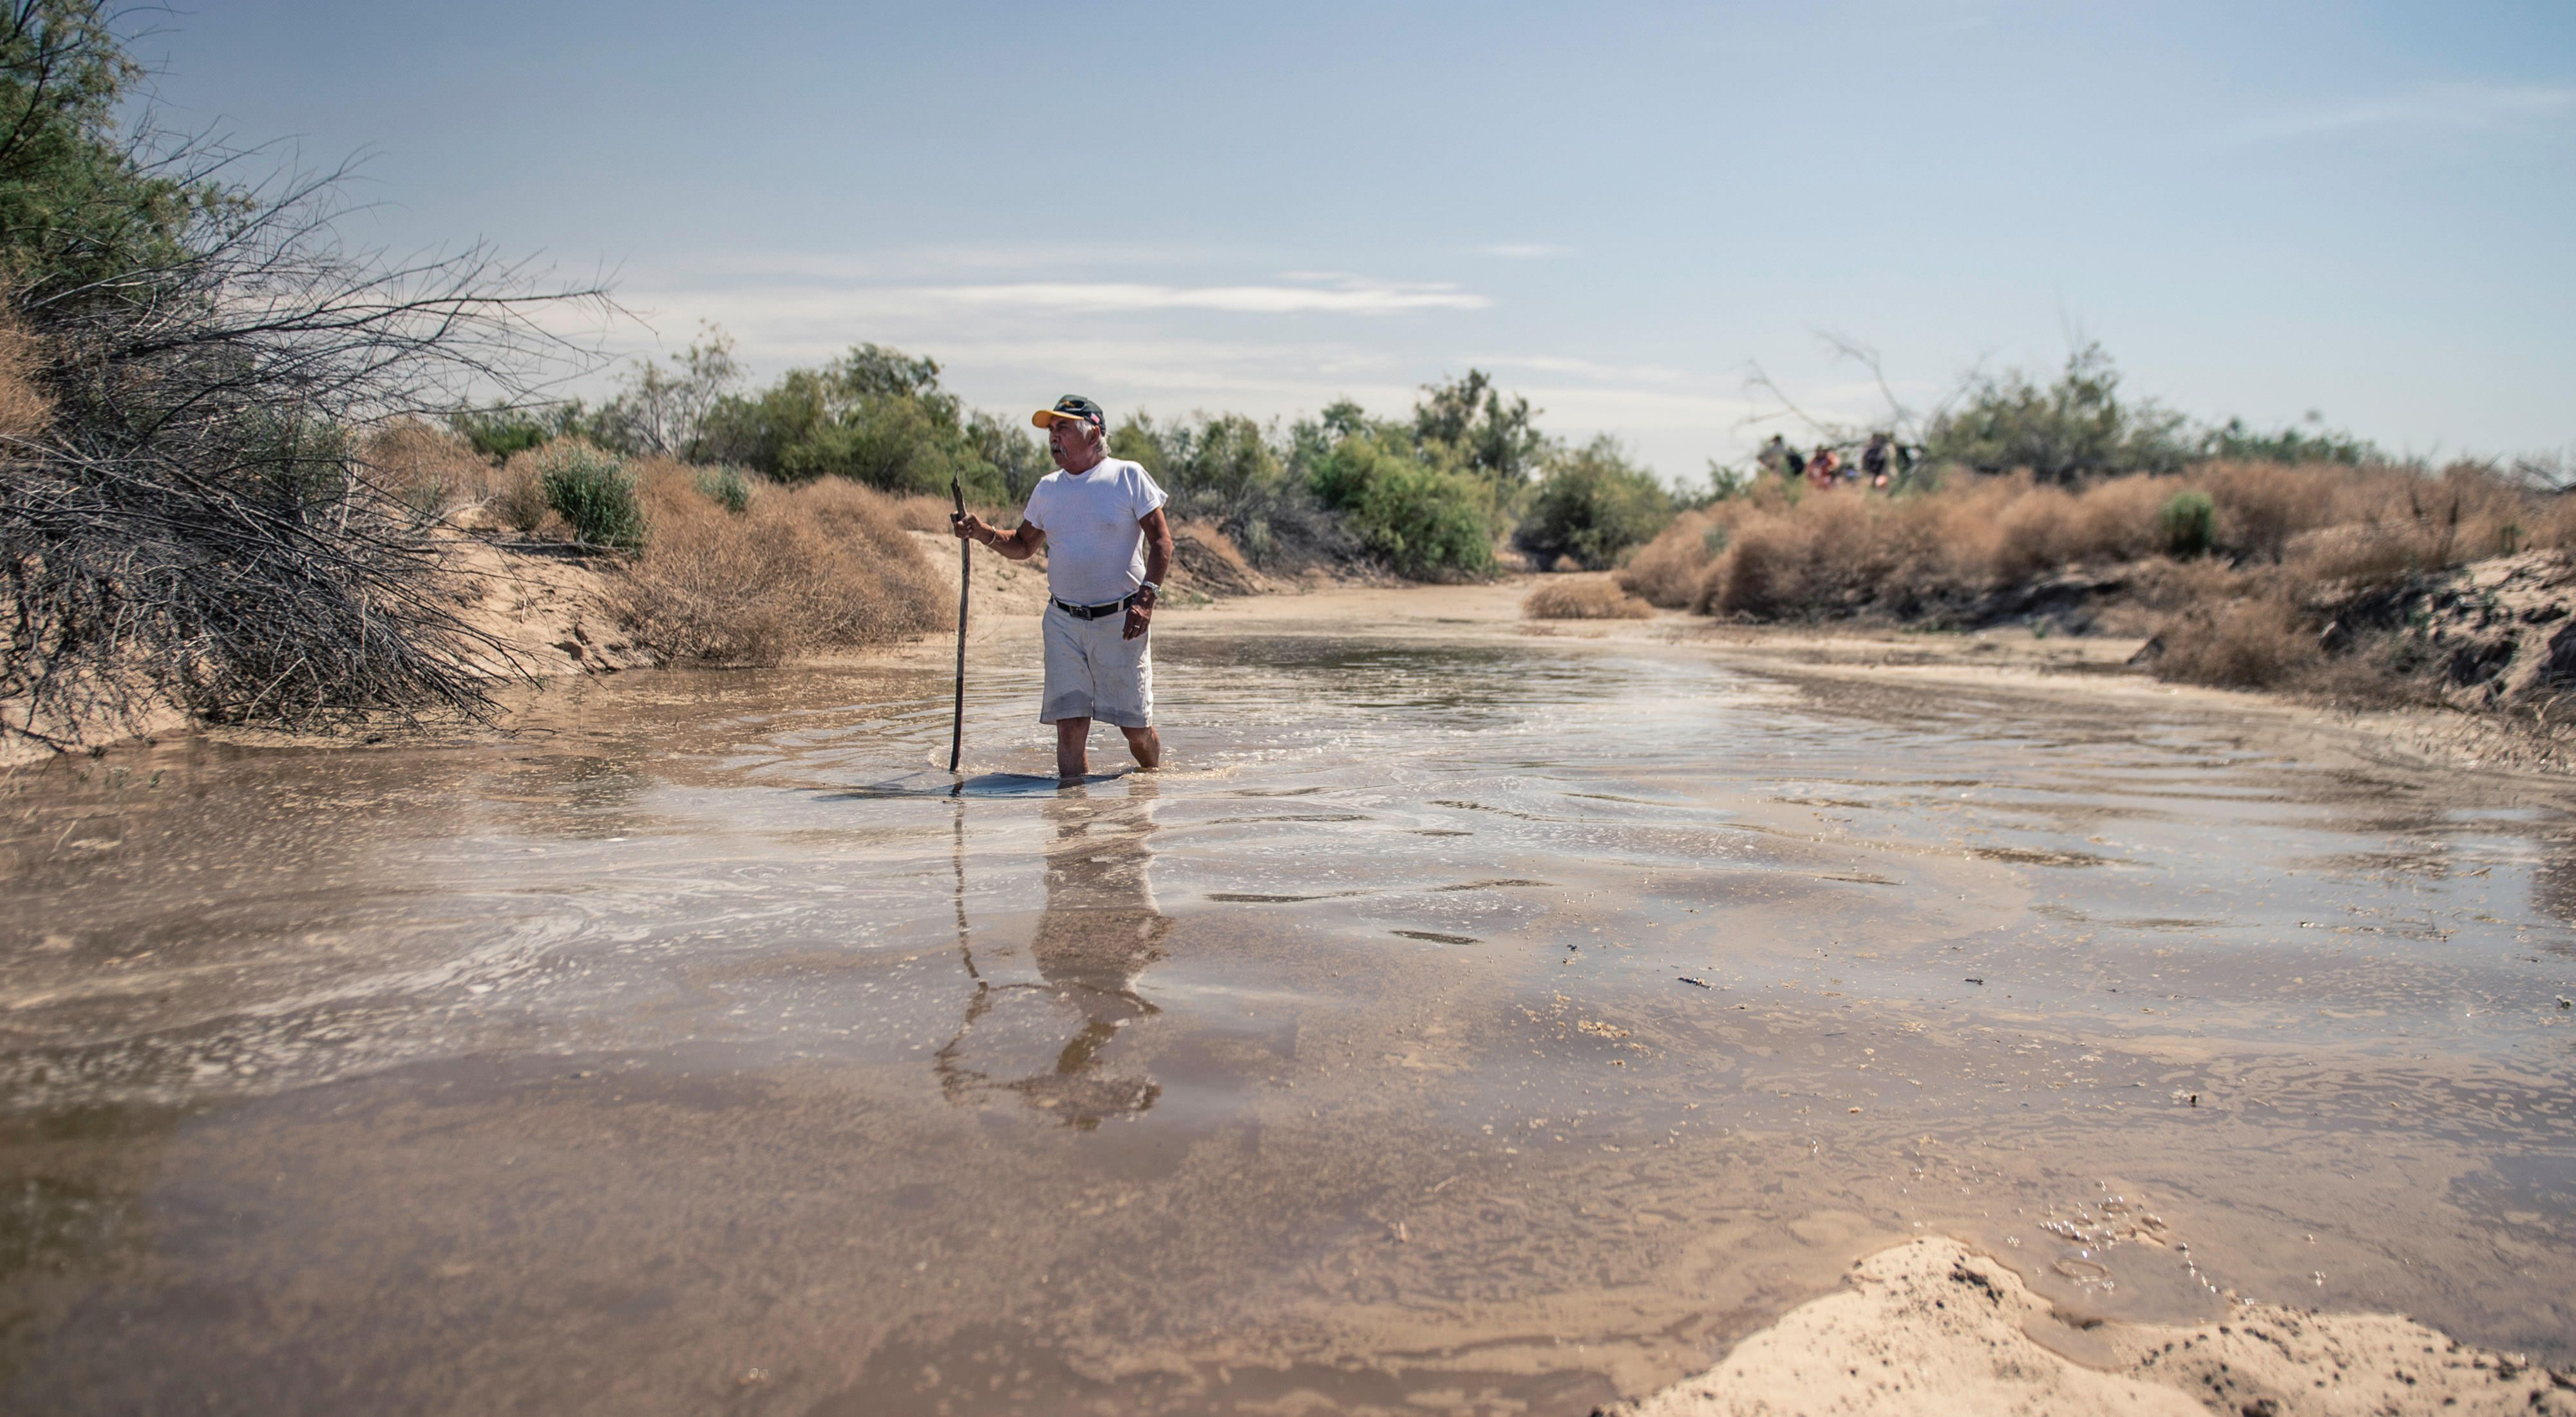 A release of water from the Morelos Dam temporarily revived the Colorado River in northern Mexico in spring 2014, encouraging the regrowth of native trees and inspiring locals to get their feet wet.